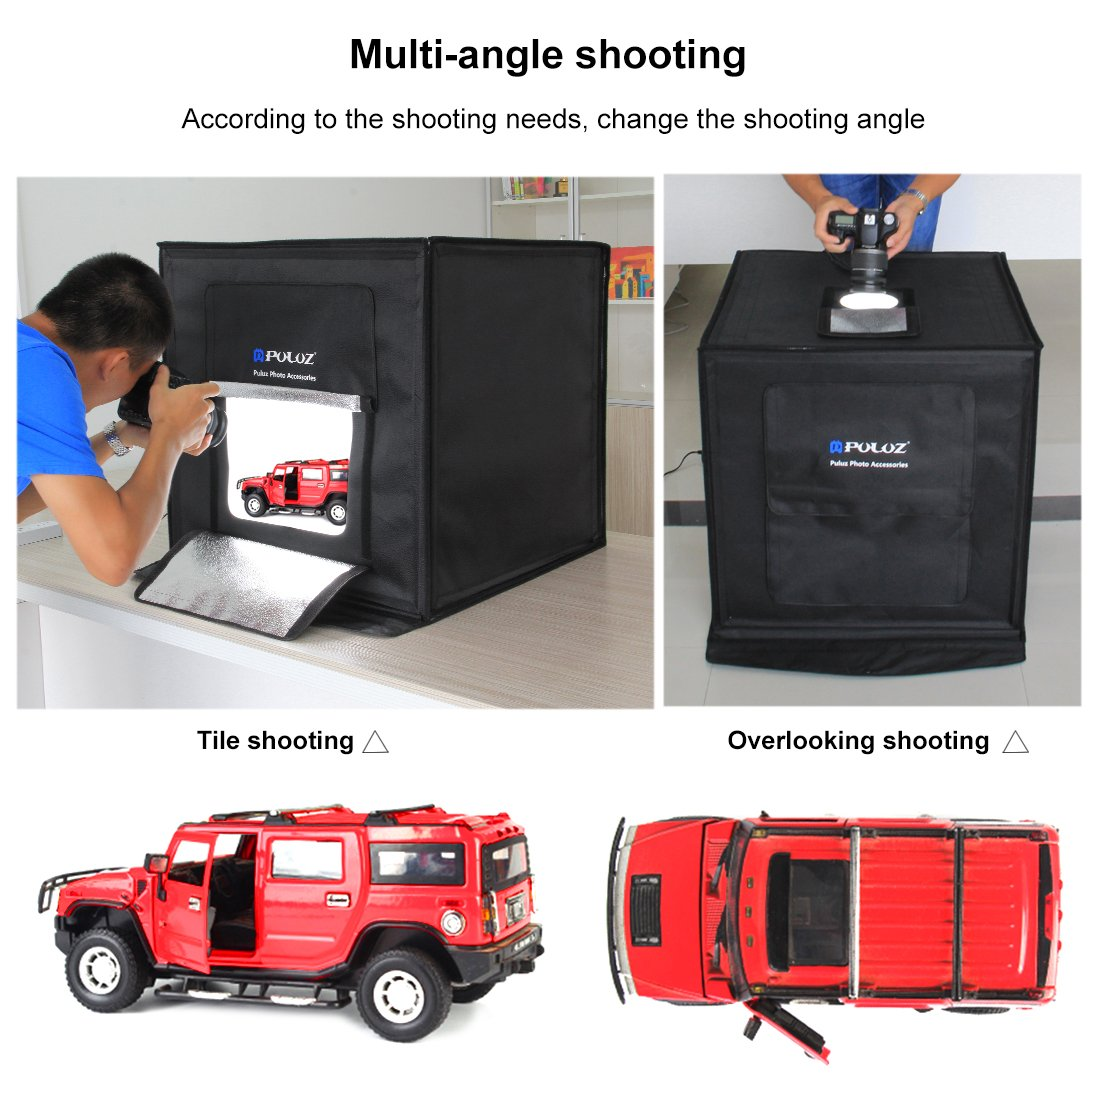 Portable Photo Studio with 3 Backdrops (Black/White/Orange), 16''x16'' Light Box for Jewelry,Toys,Baking,Small Items Photography, Shooting Tent Box Kit Brightness Adjustable by TSLEEN (Image #2)